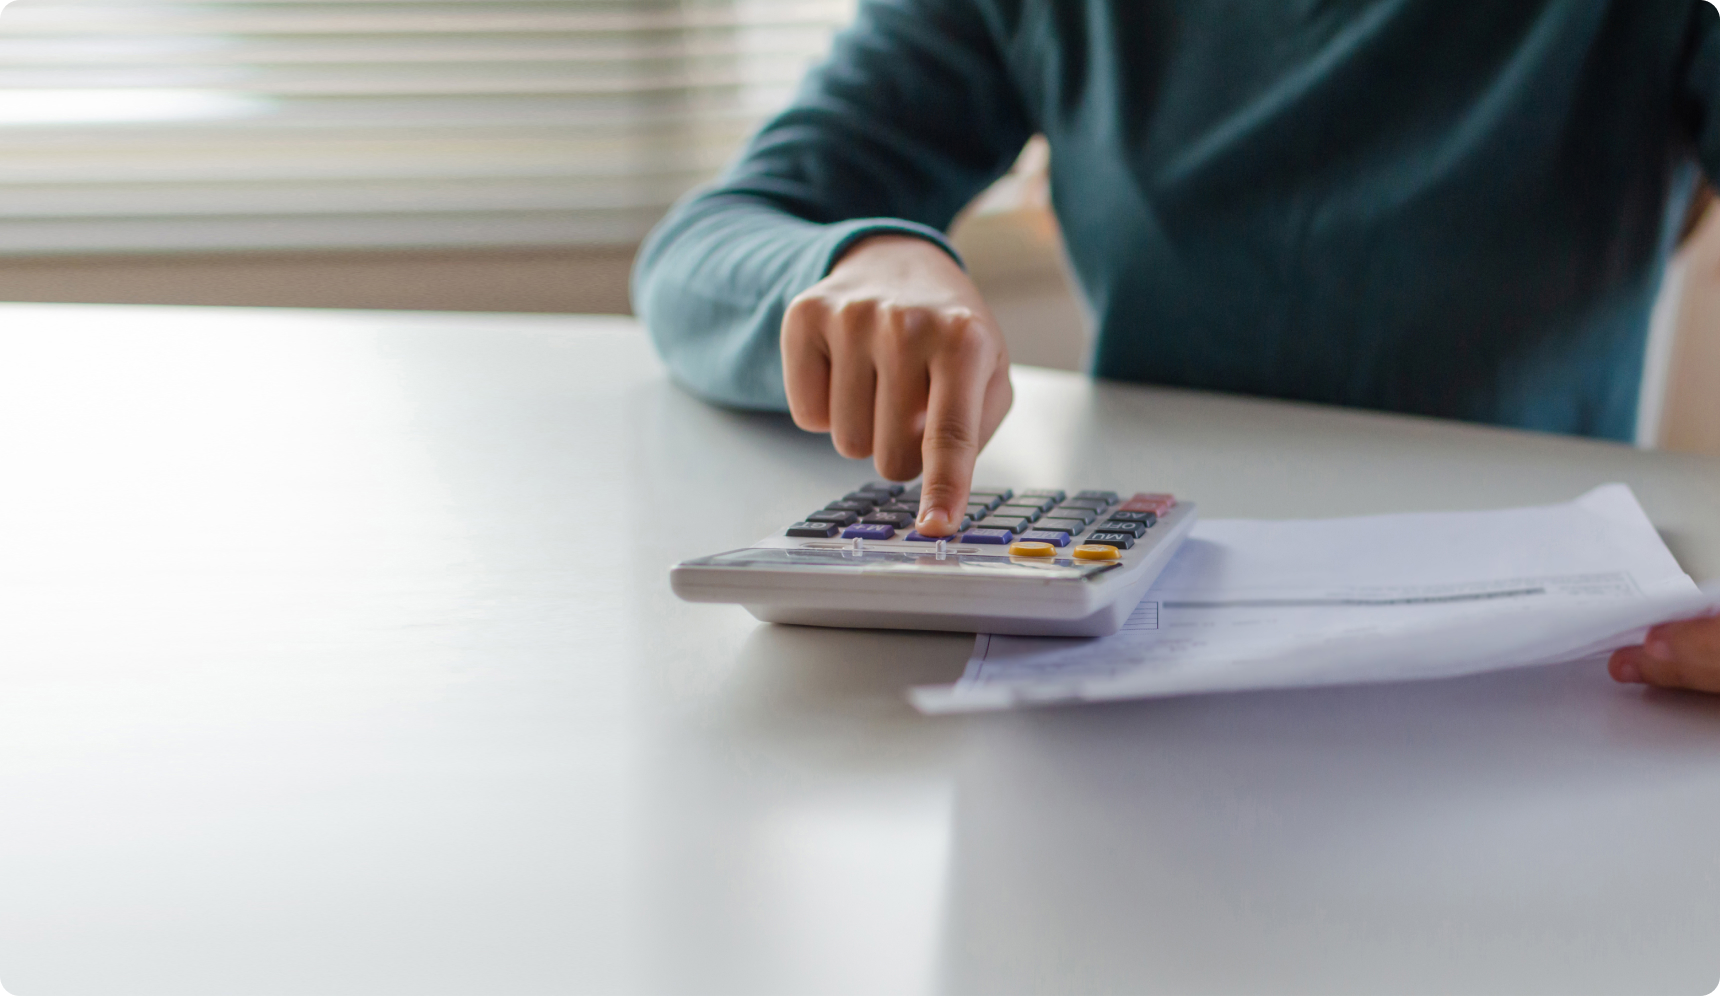 Person at table calculating costs on calculator